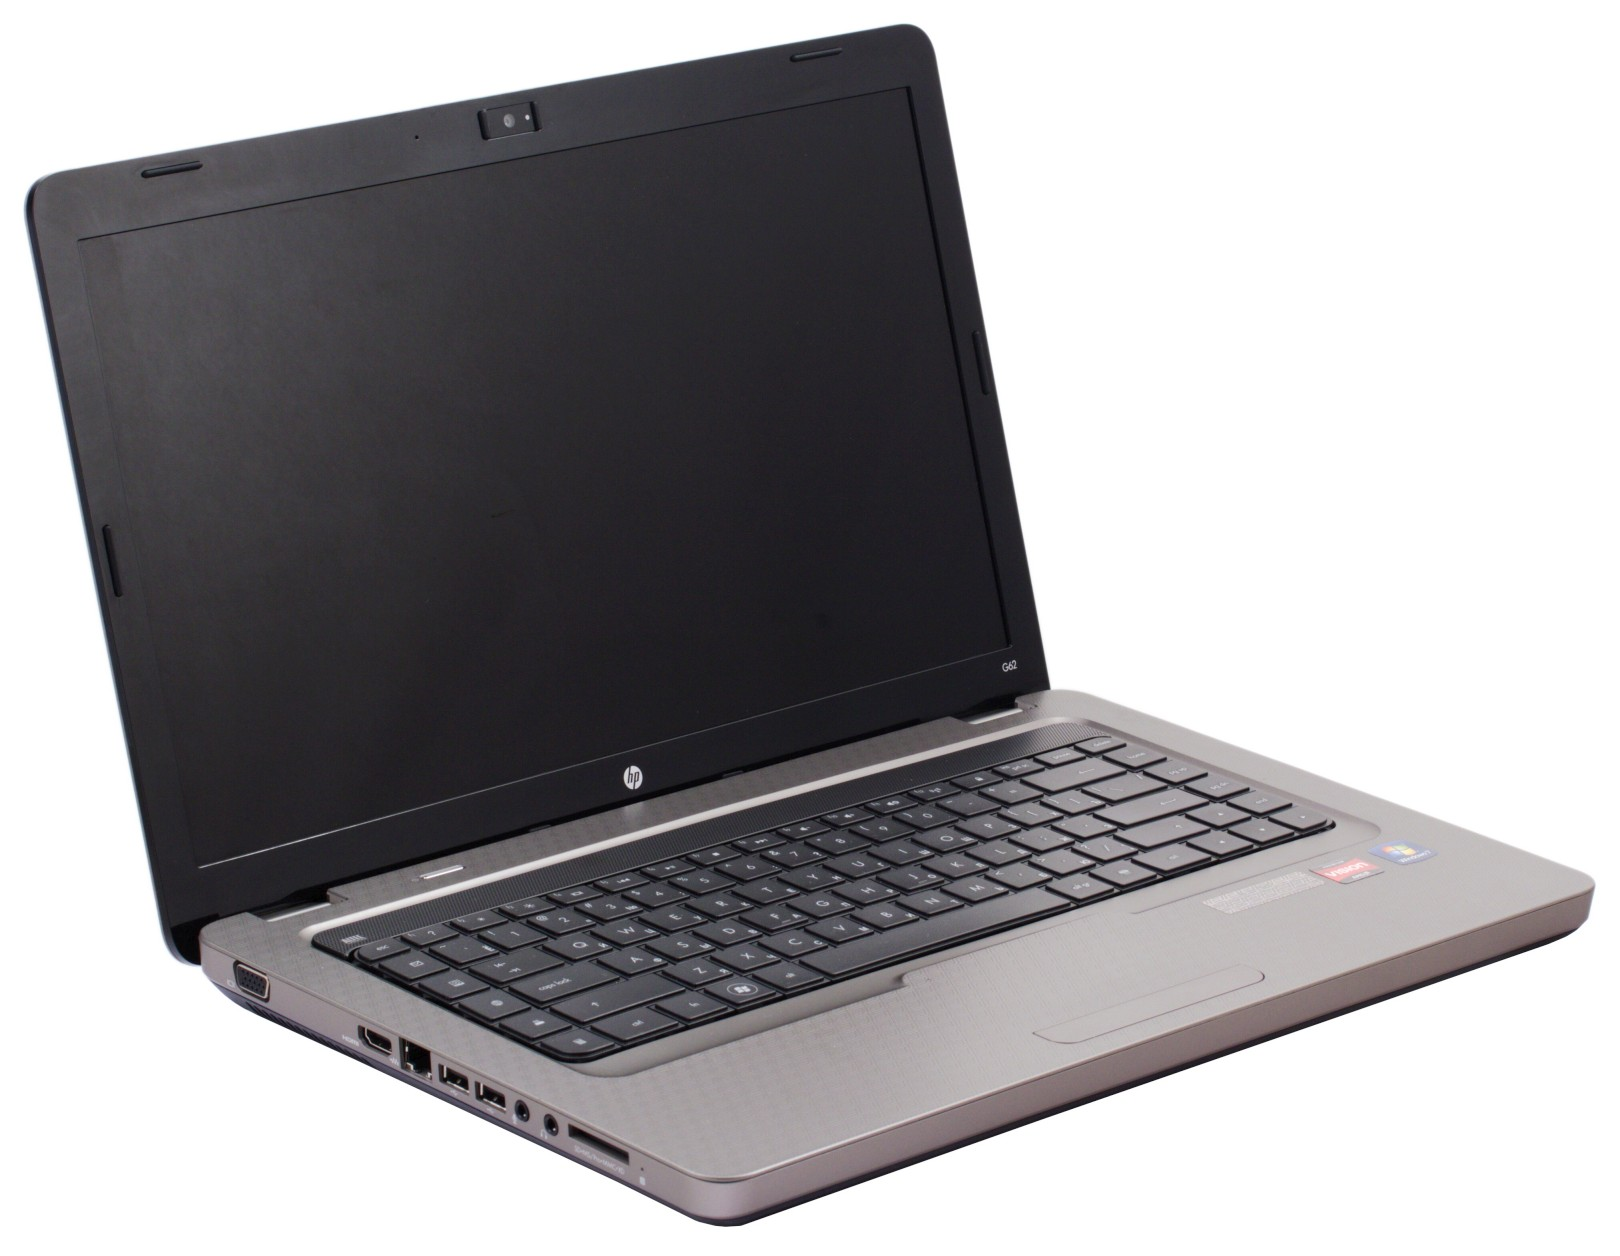 HP G62-227CL Notebook Ralink/Motorola BC4 Bluetooth Drivers for Mac Download